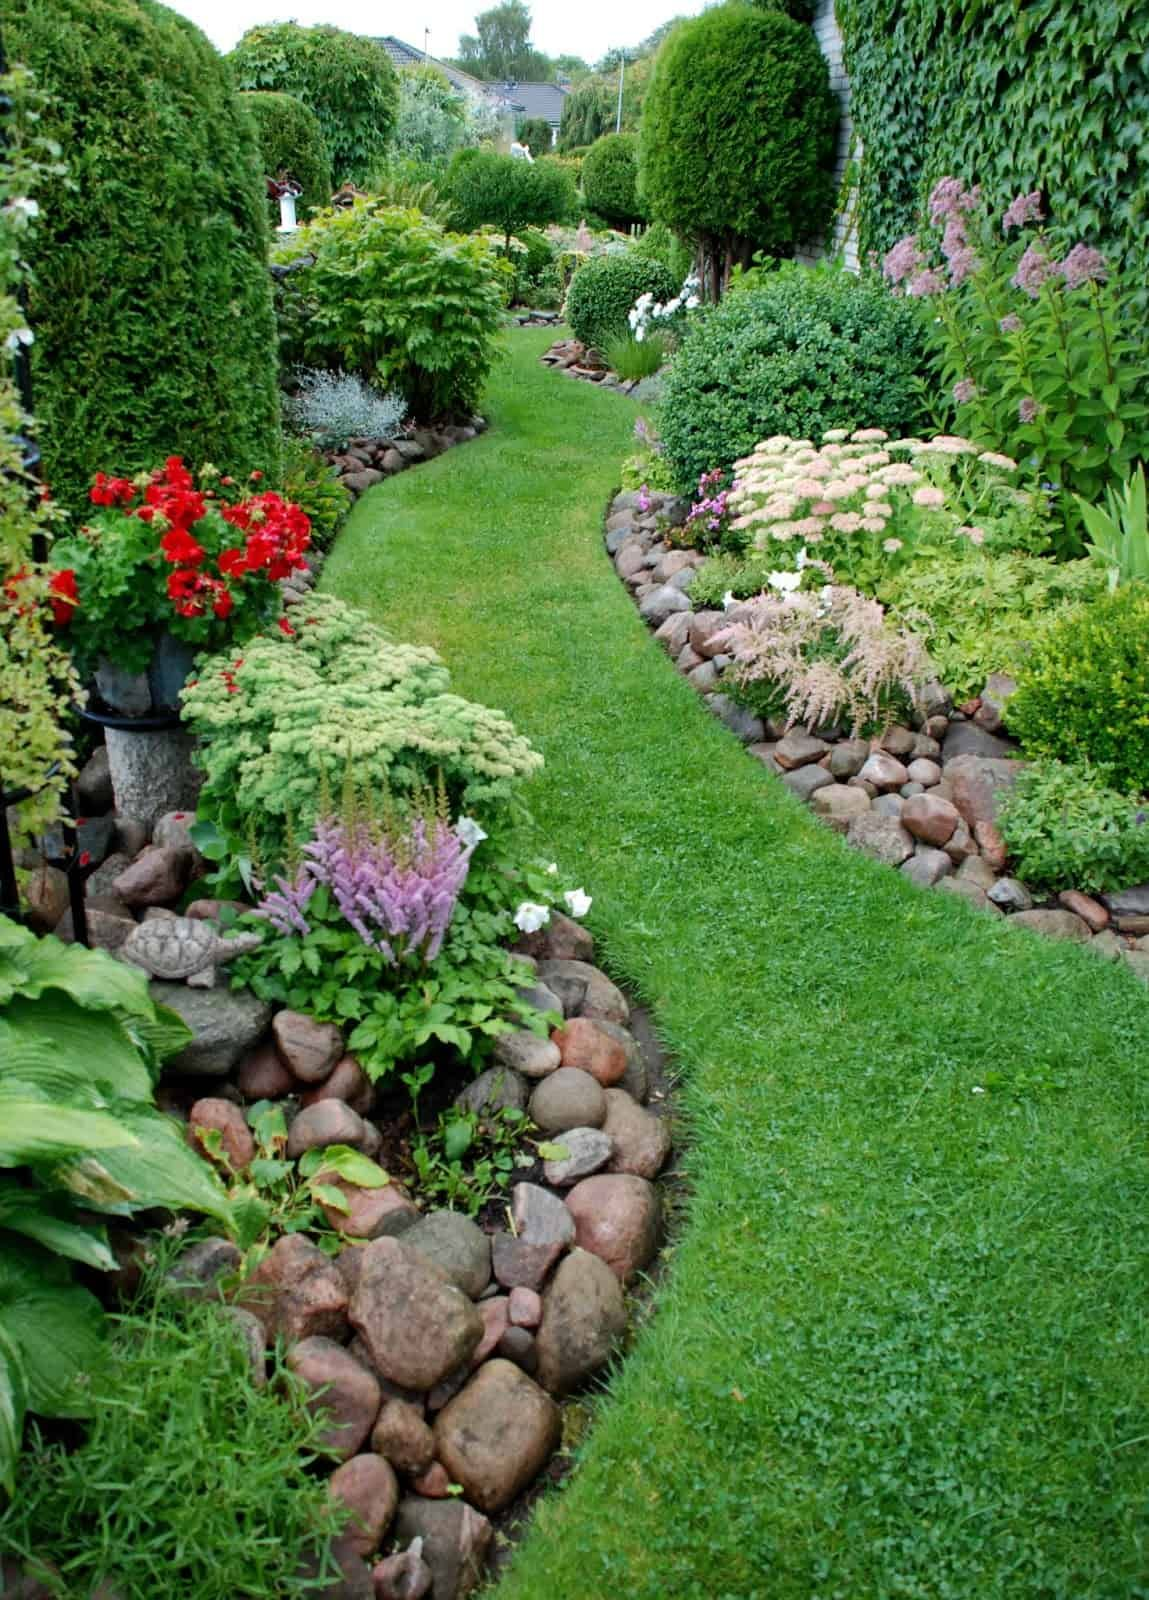 150 Of The Best Curb Appeal Ideas For 2021 A Nest With A Yard Backyard Landscaping Designs Rock Garden Landscaping Small Front Yard Landscaping